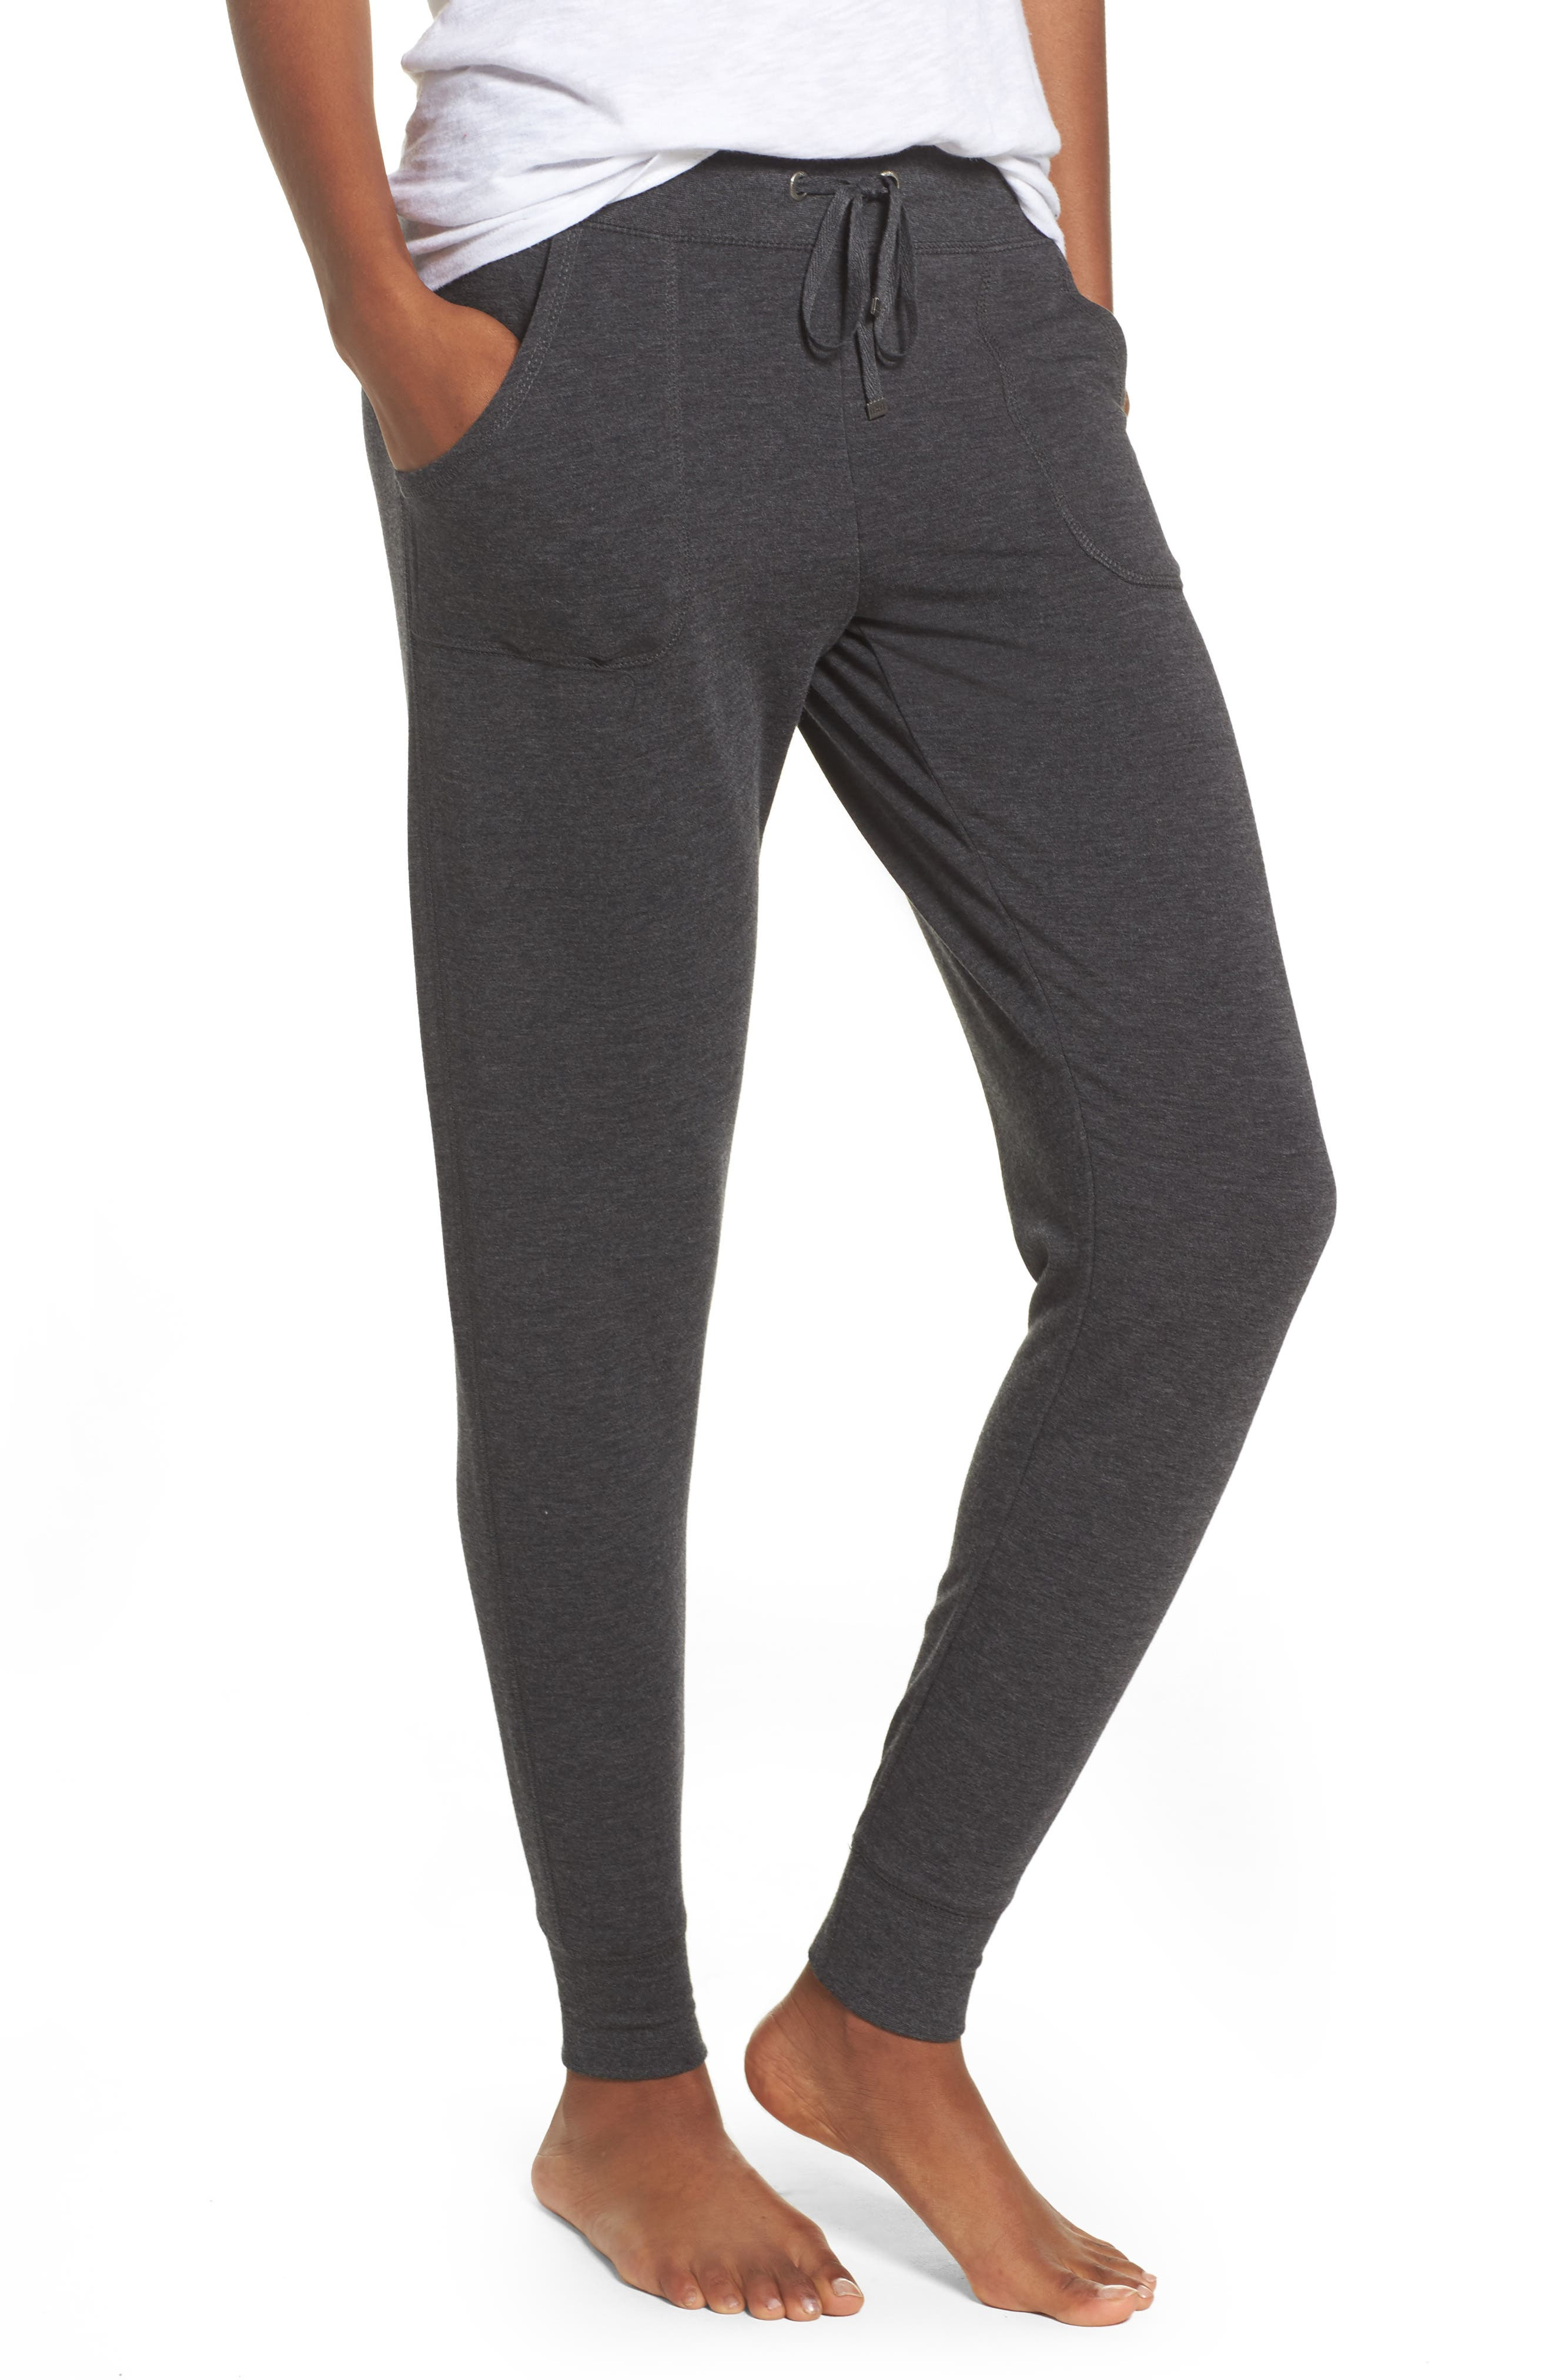 All About It Lounge Pants,                             Main thumbnail 1, color,